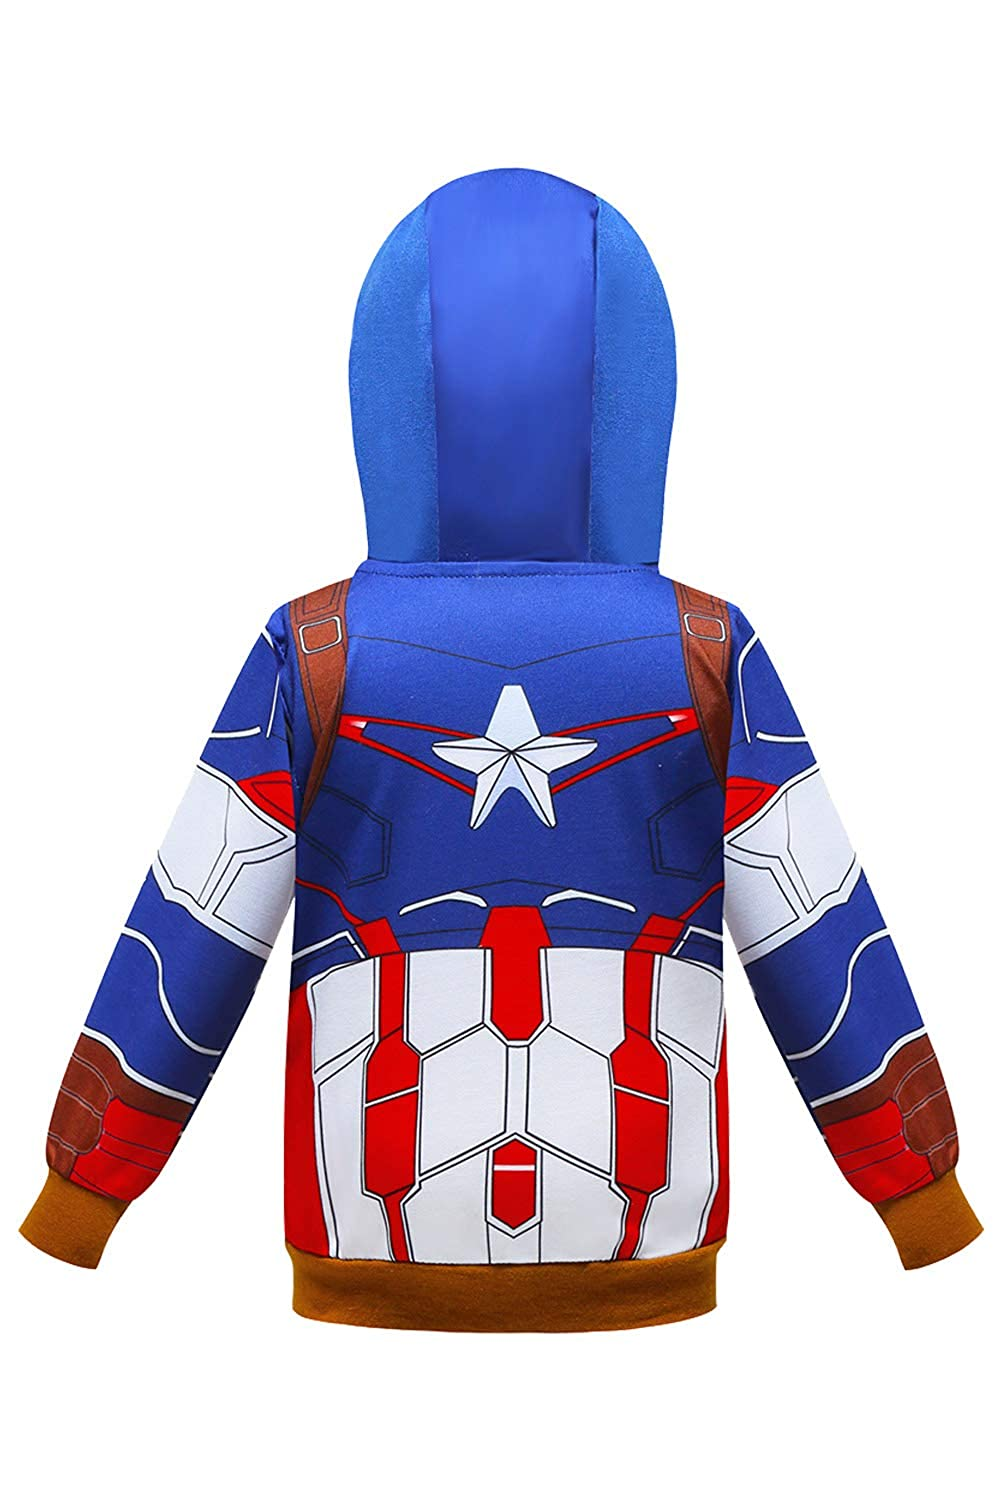 Mutrade Womens Captain Printed Jacket Cosplay Costume Fashion Zipper Hooded Sweatshirt